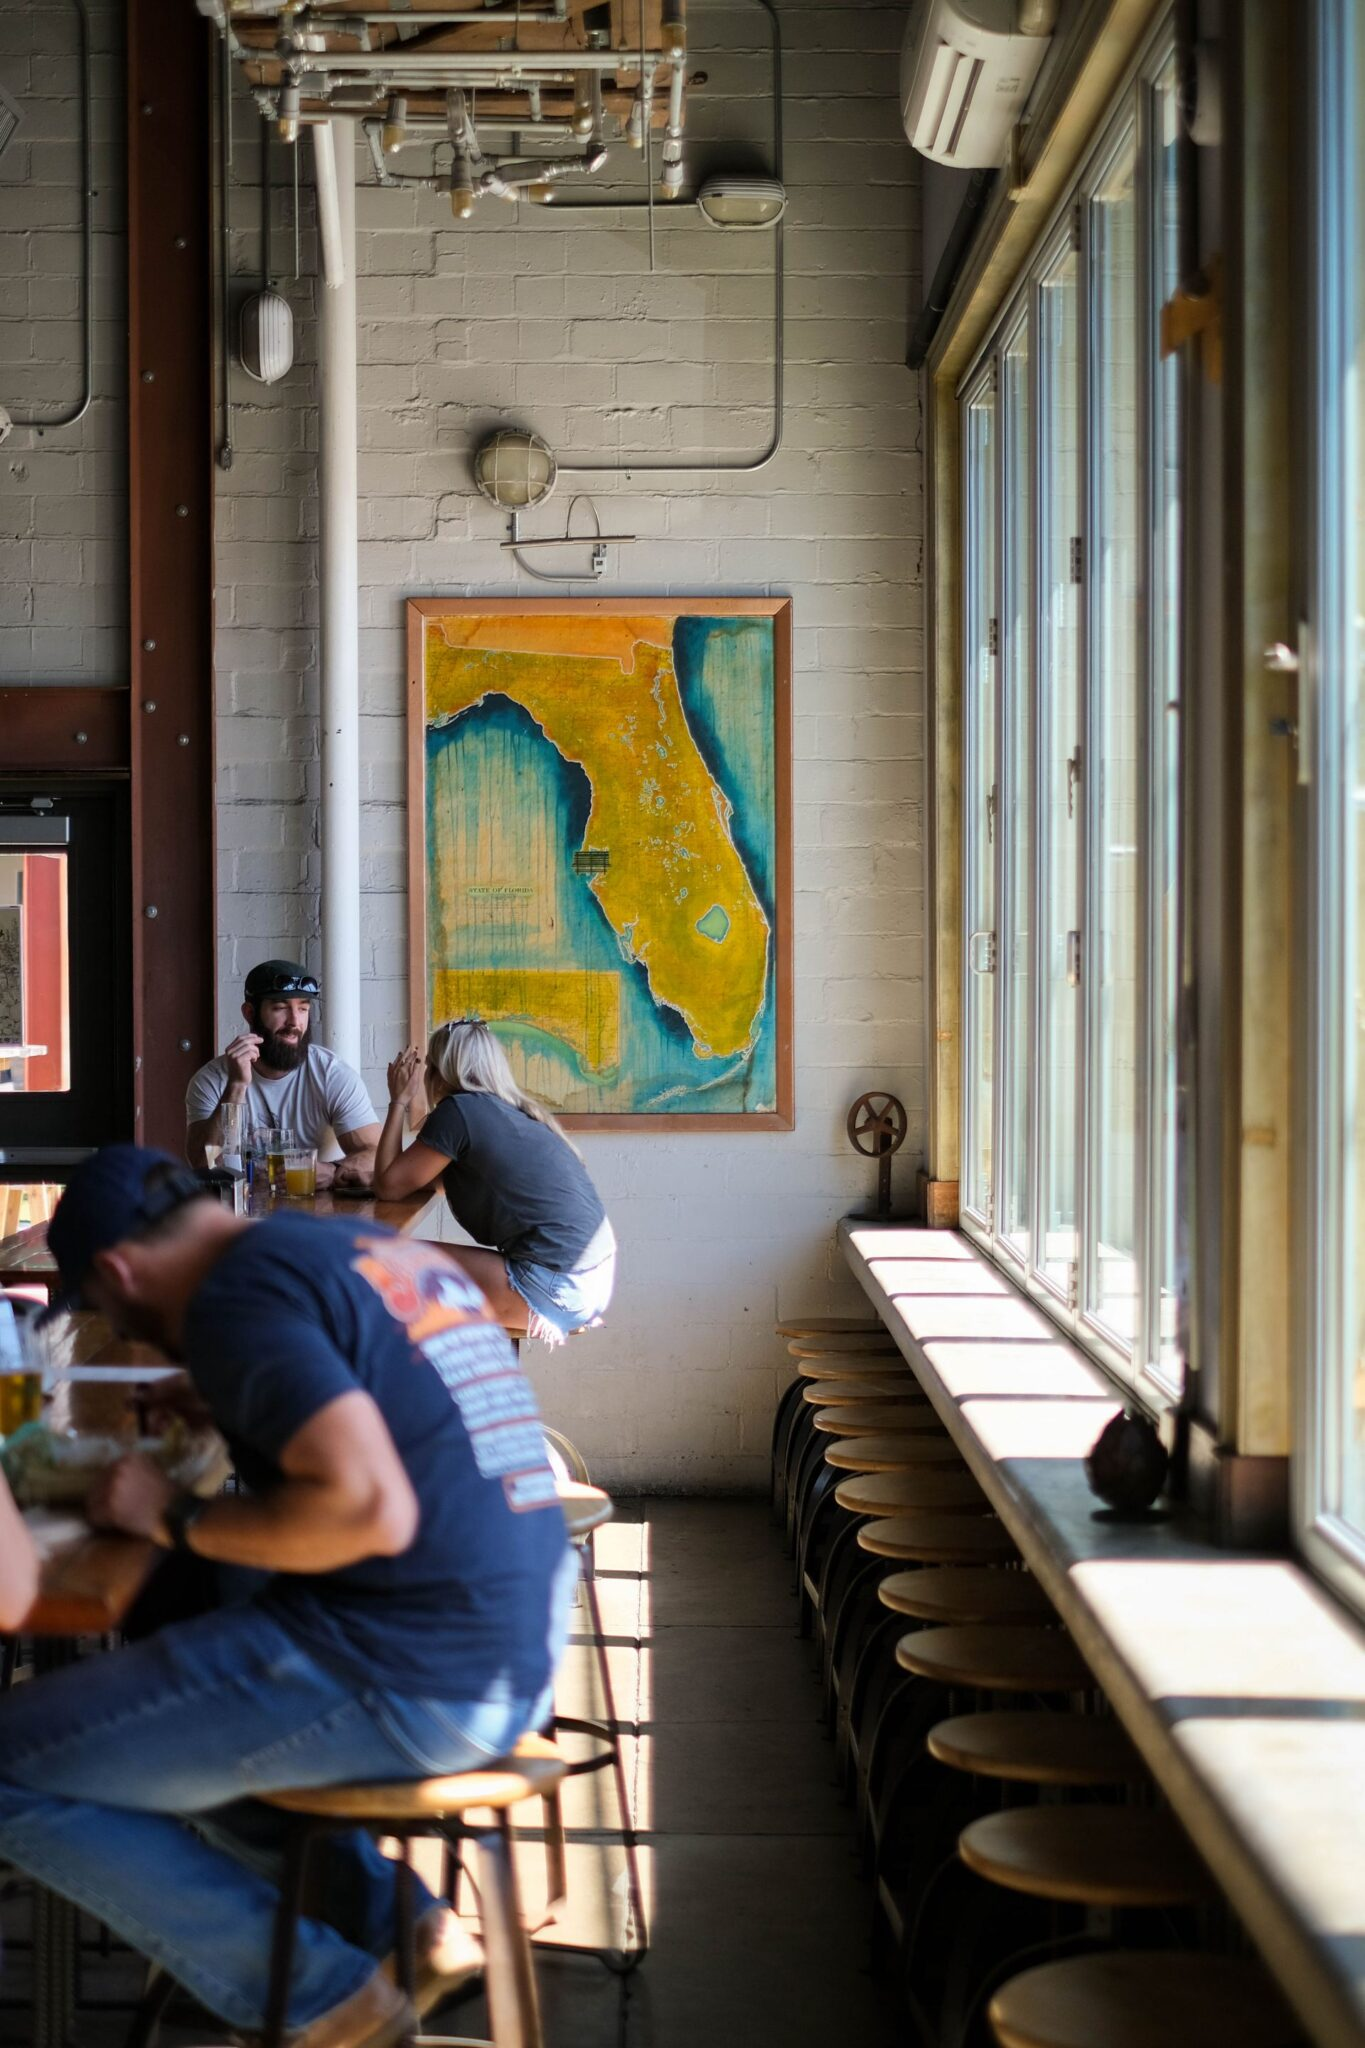 The Gulp Coast A Craft Beer Guide To The Best Breweries In St Pete Man Vs Globe